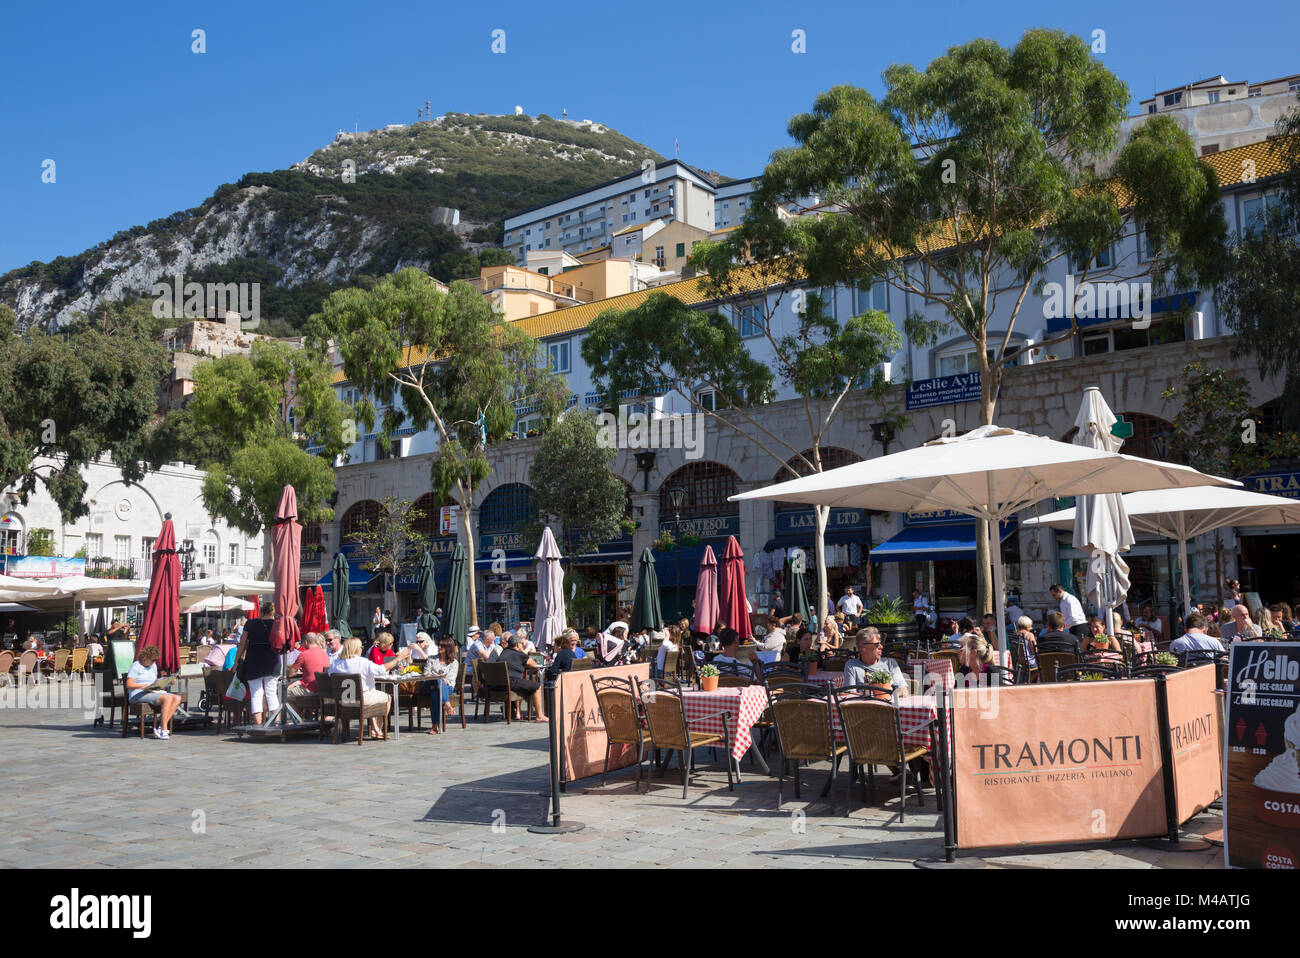 View of Grand Casemates Square, looking northeast towards the Rock of Gibraltar. - Stock Image